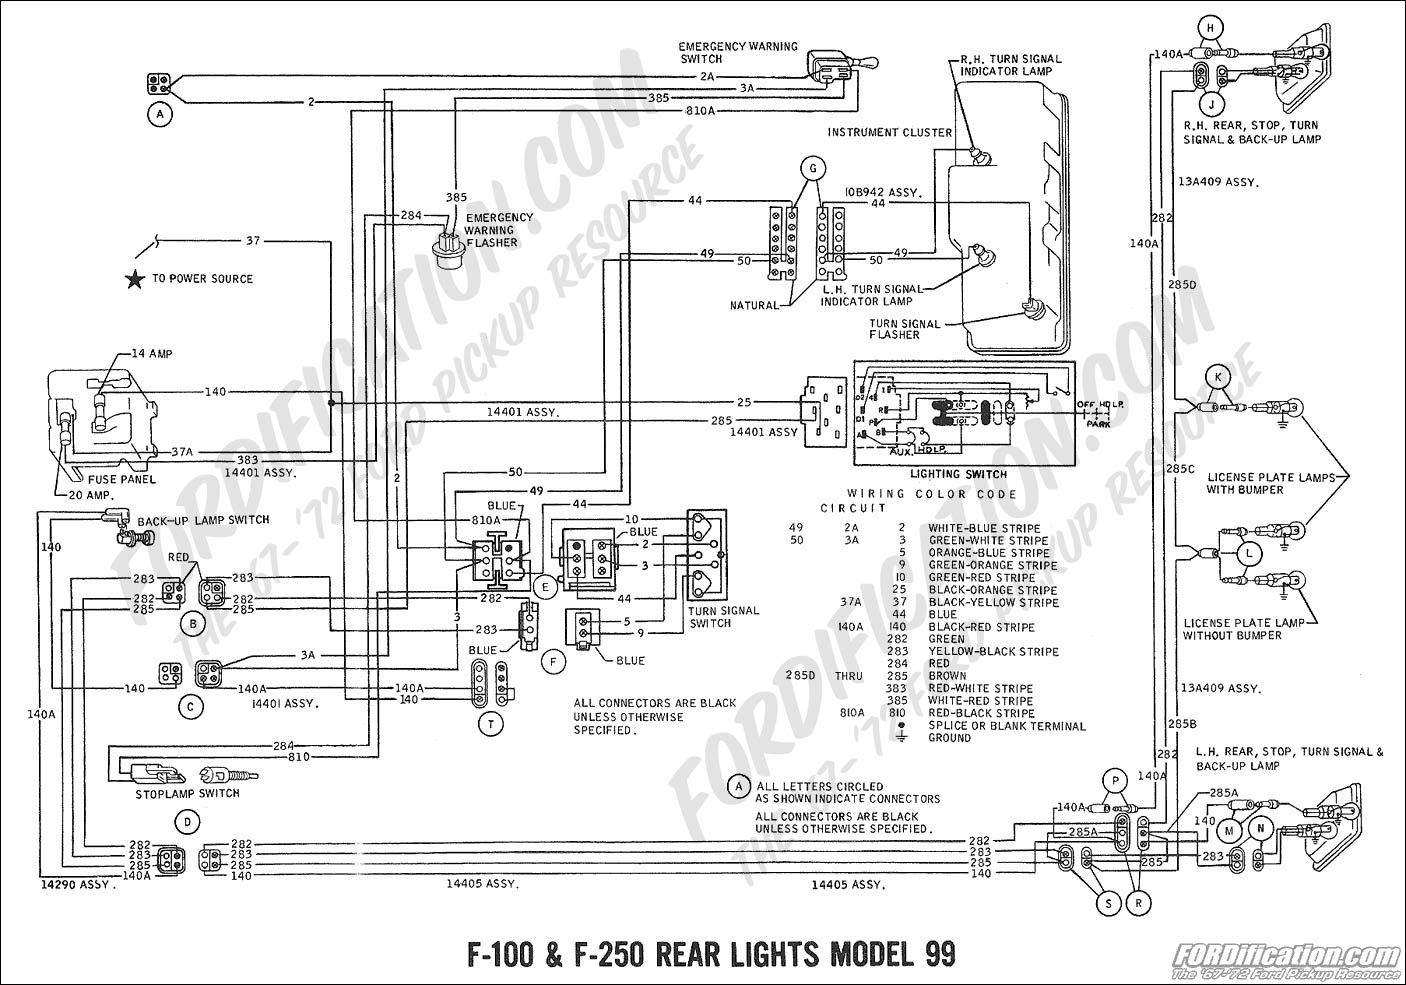 Honda Es3500 Generator Wiring Diagram also Audi A5 Seats Wiring Diagrams also 31q29 Relay Box 1990 Ford F350 Diesel Dually further 2010 Audi A4 Engine Diagram together with 7z1yq Volkswagen Jetta 2 5 Need Fuse Diagram Jetta 2005. on 2009 audi a4 fuse diagram html